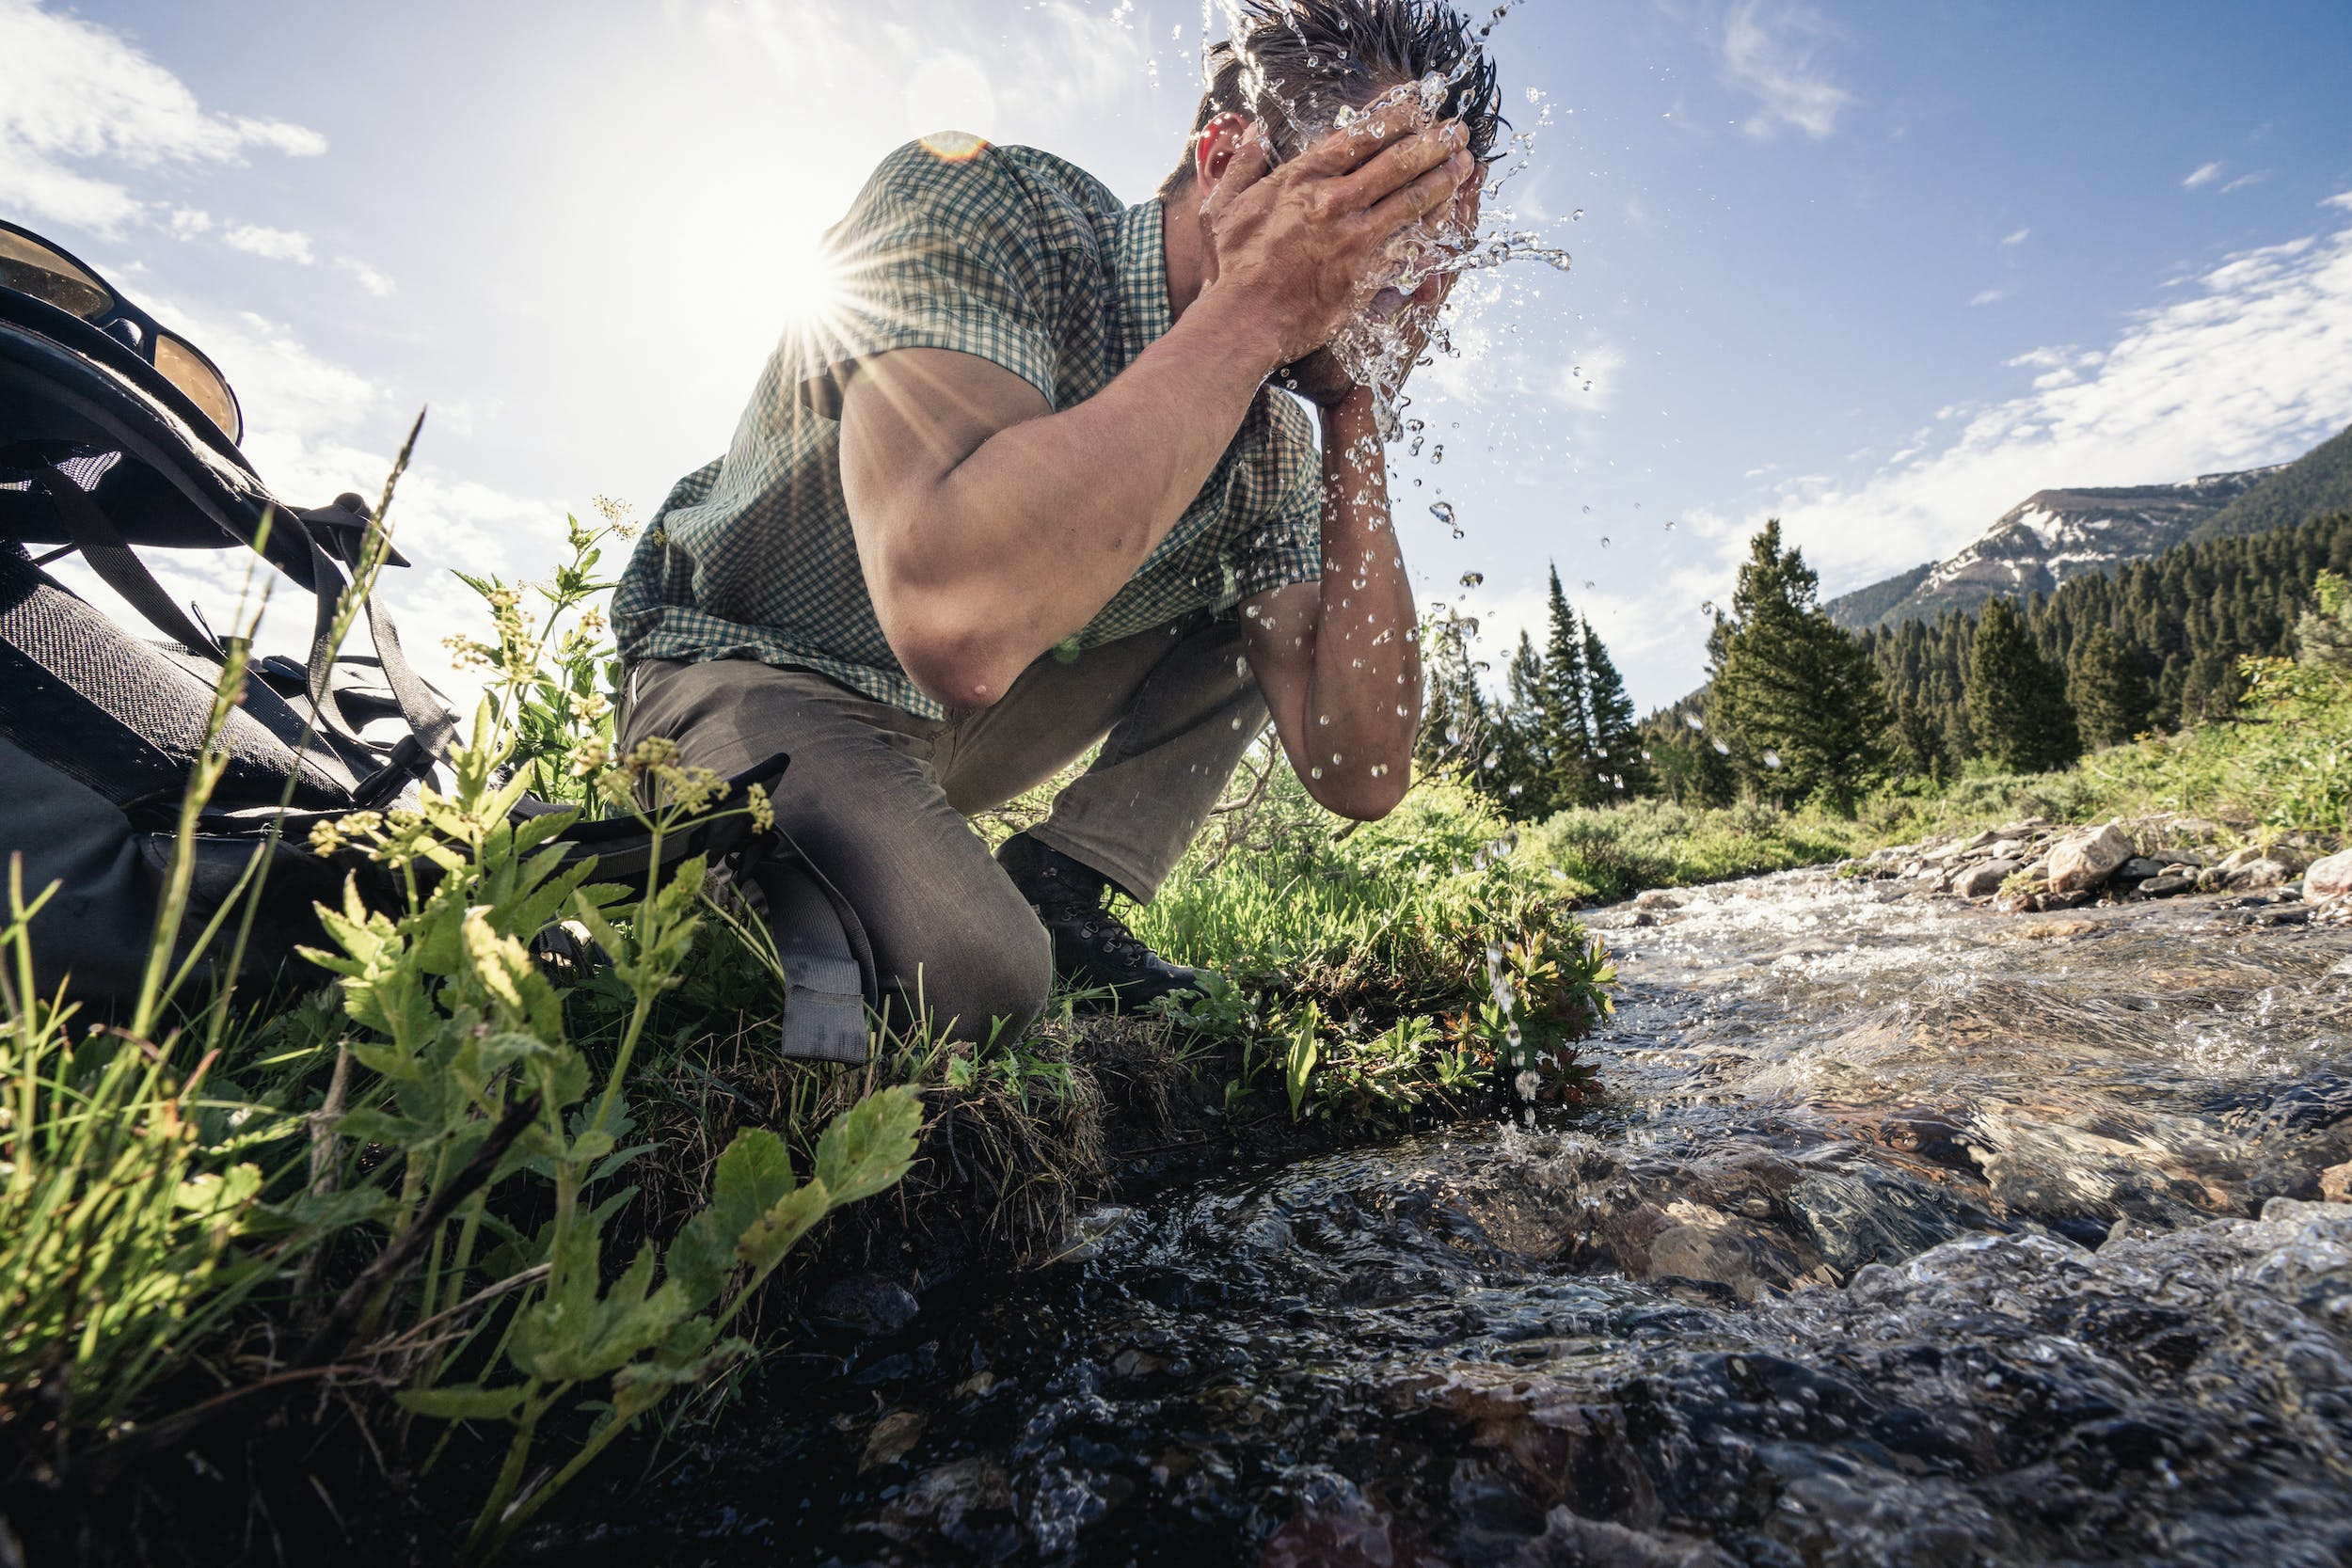 Things to be mindful of while out on the trails are the kinds of personal care products you pack in (and out), and how to properly use them.